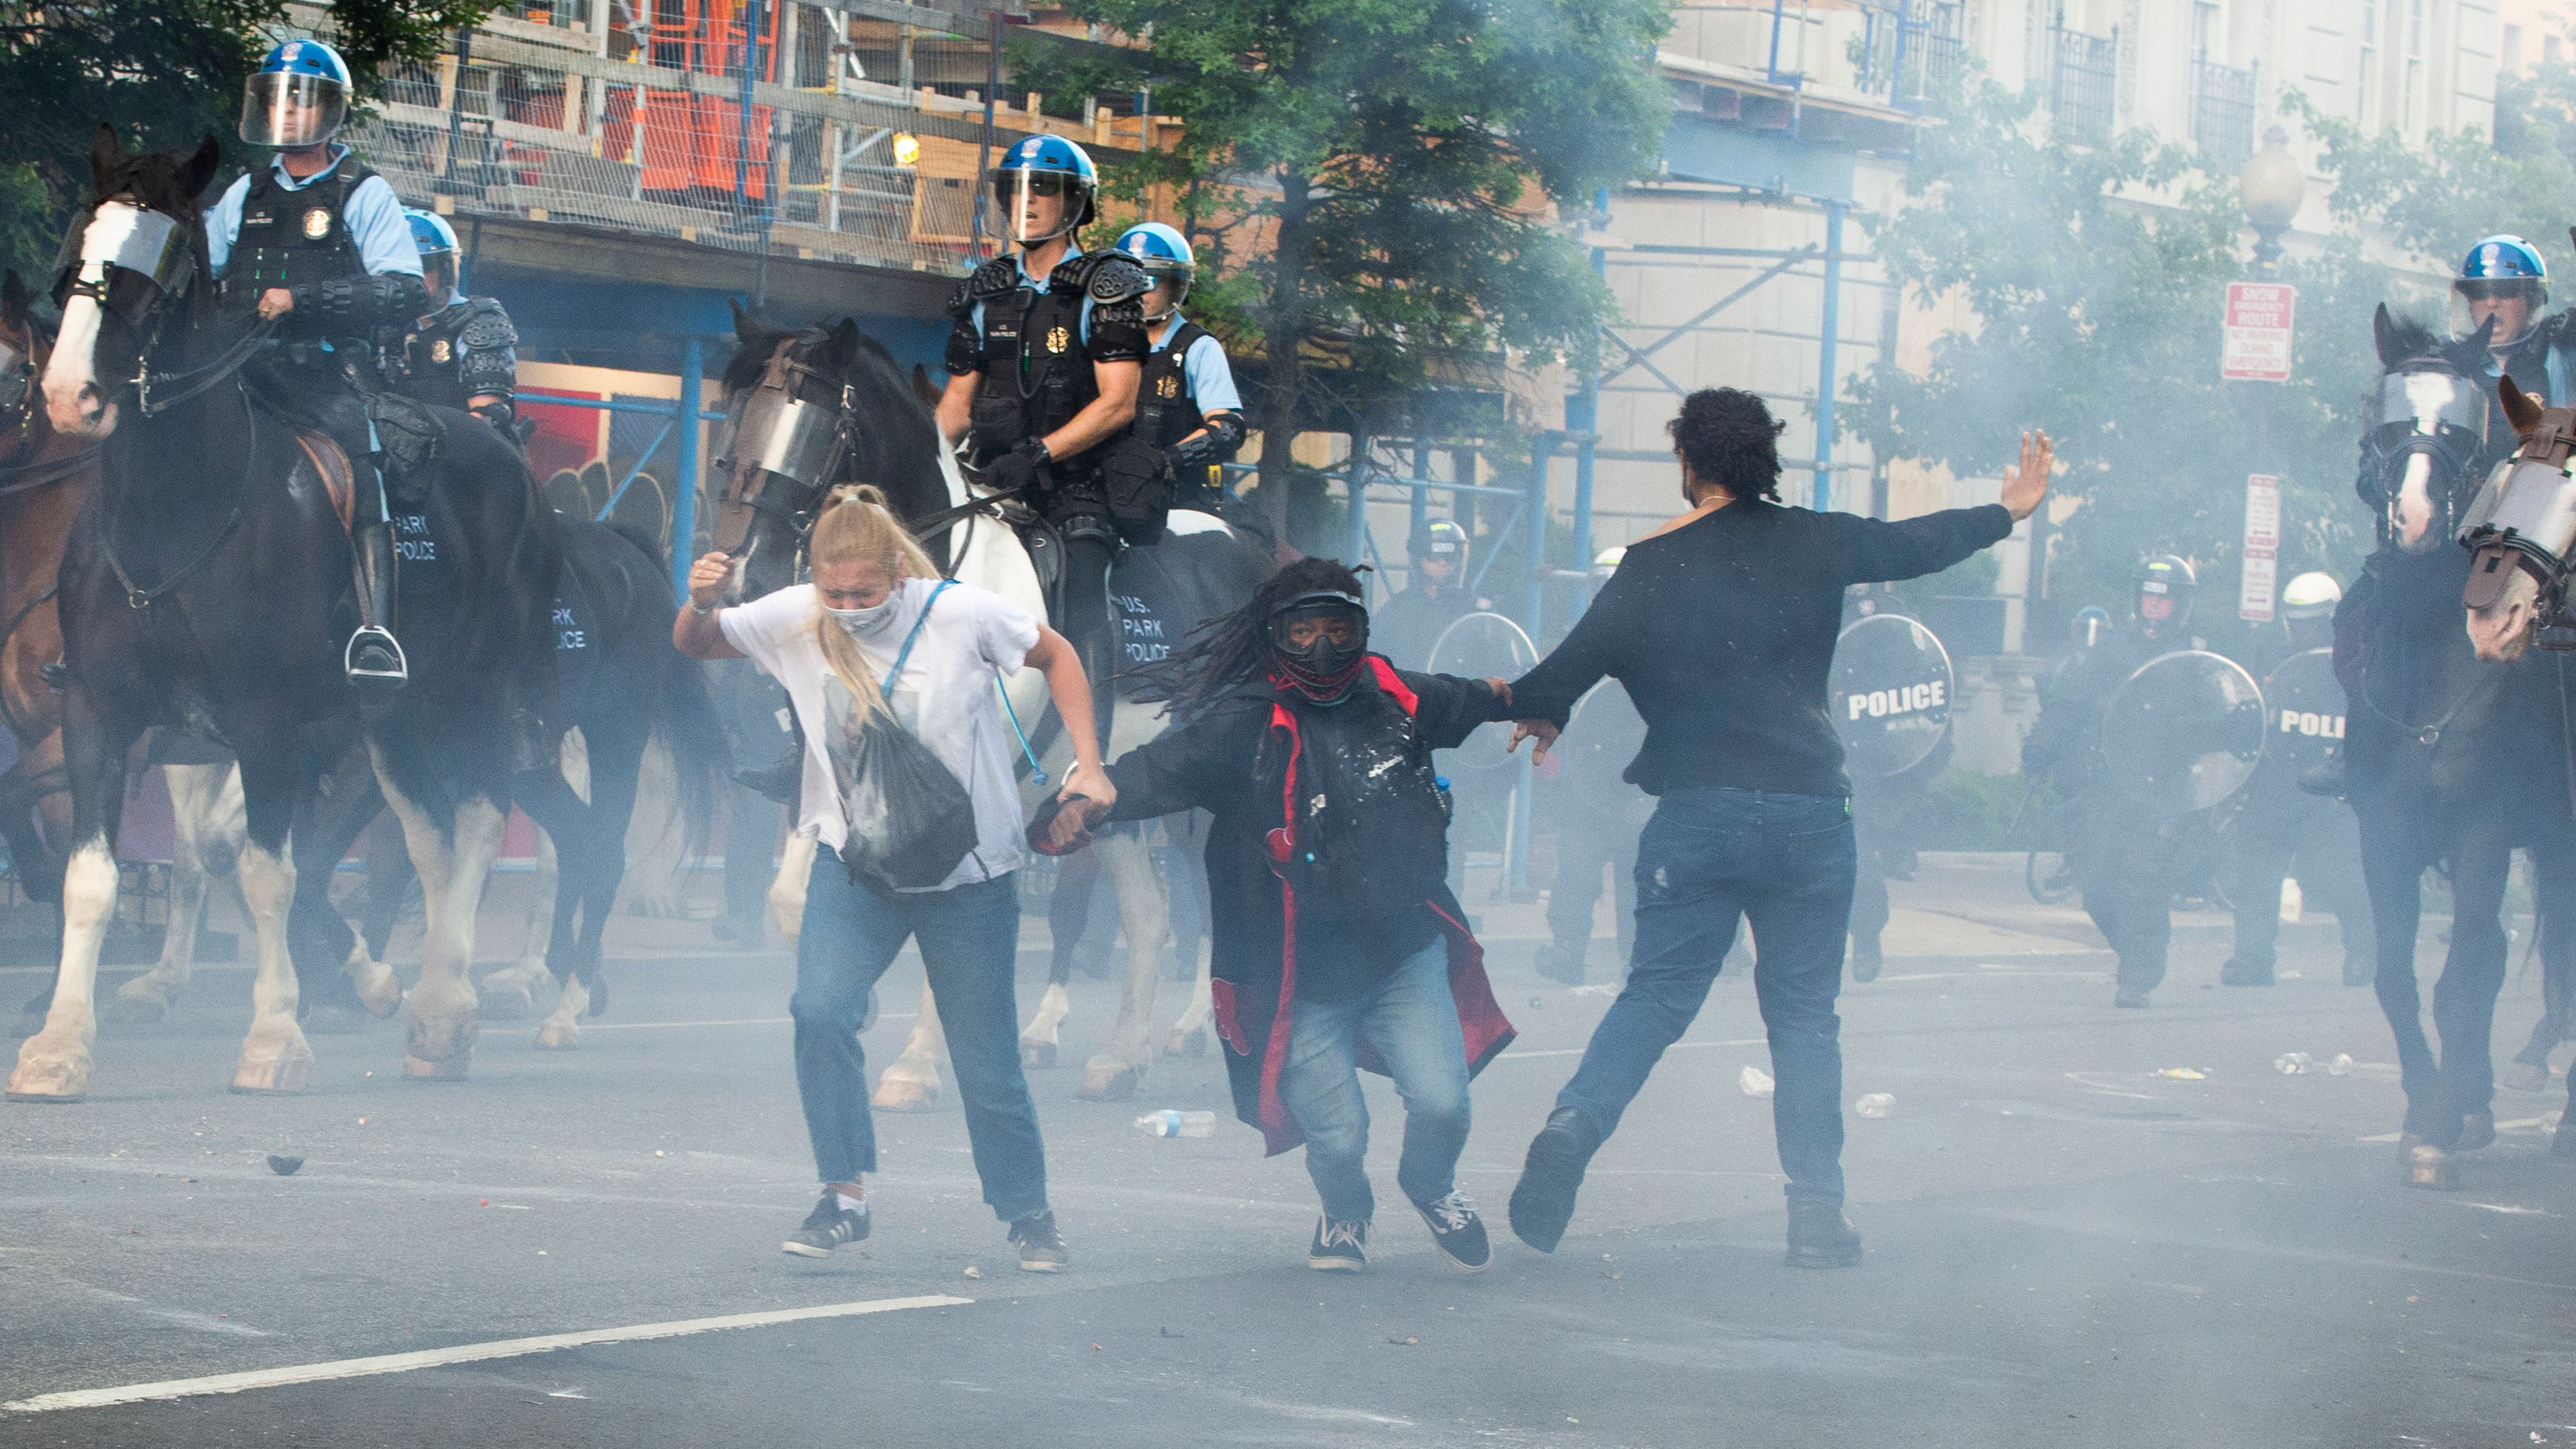 Tear gas: Prepare for what to do if you're exposed